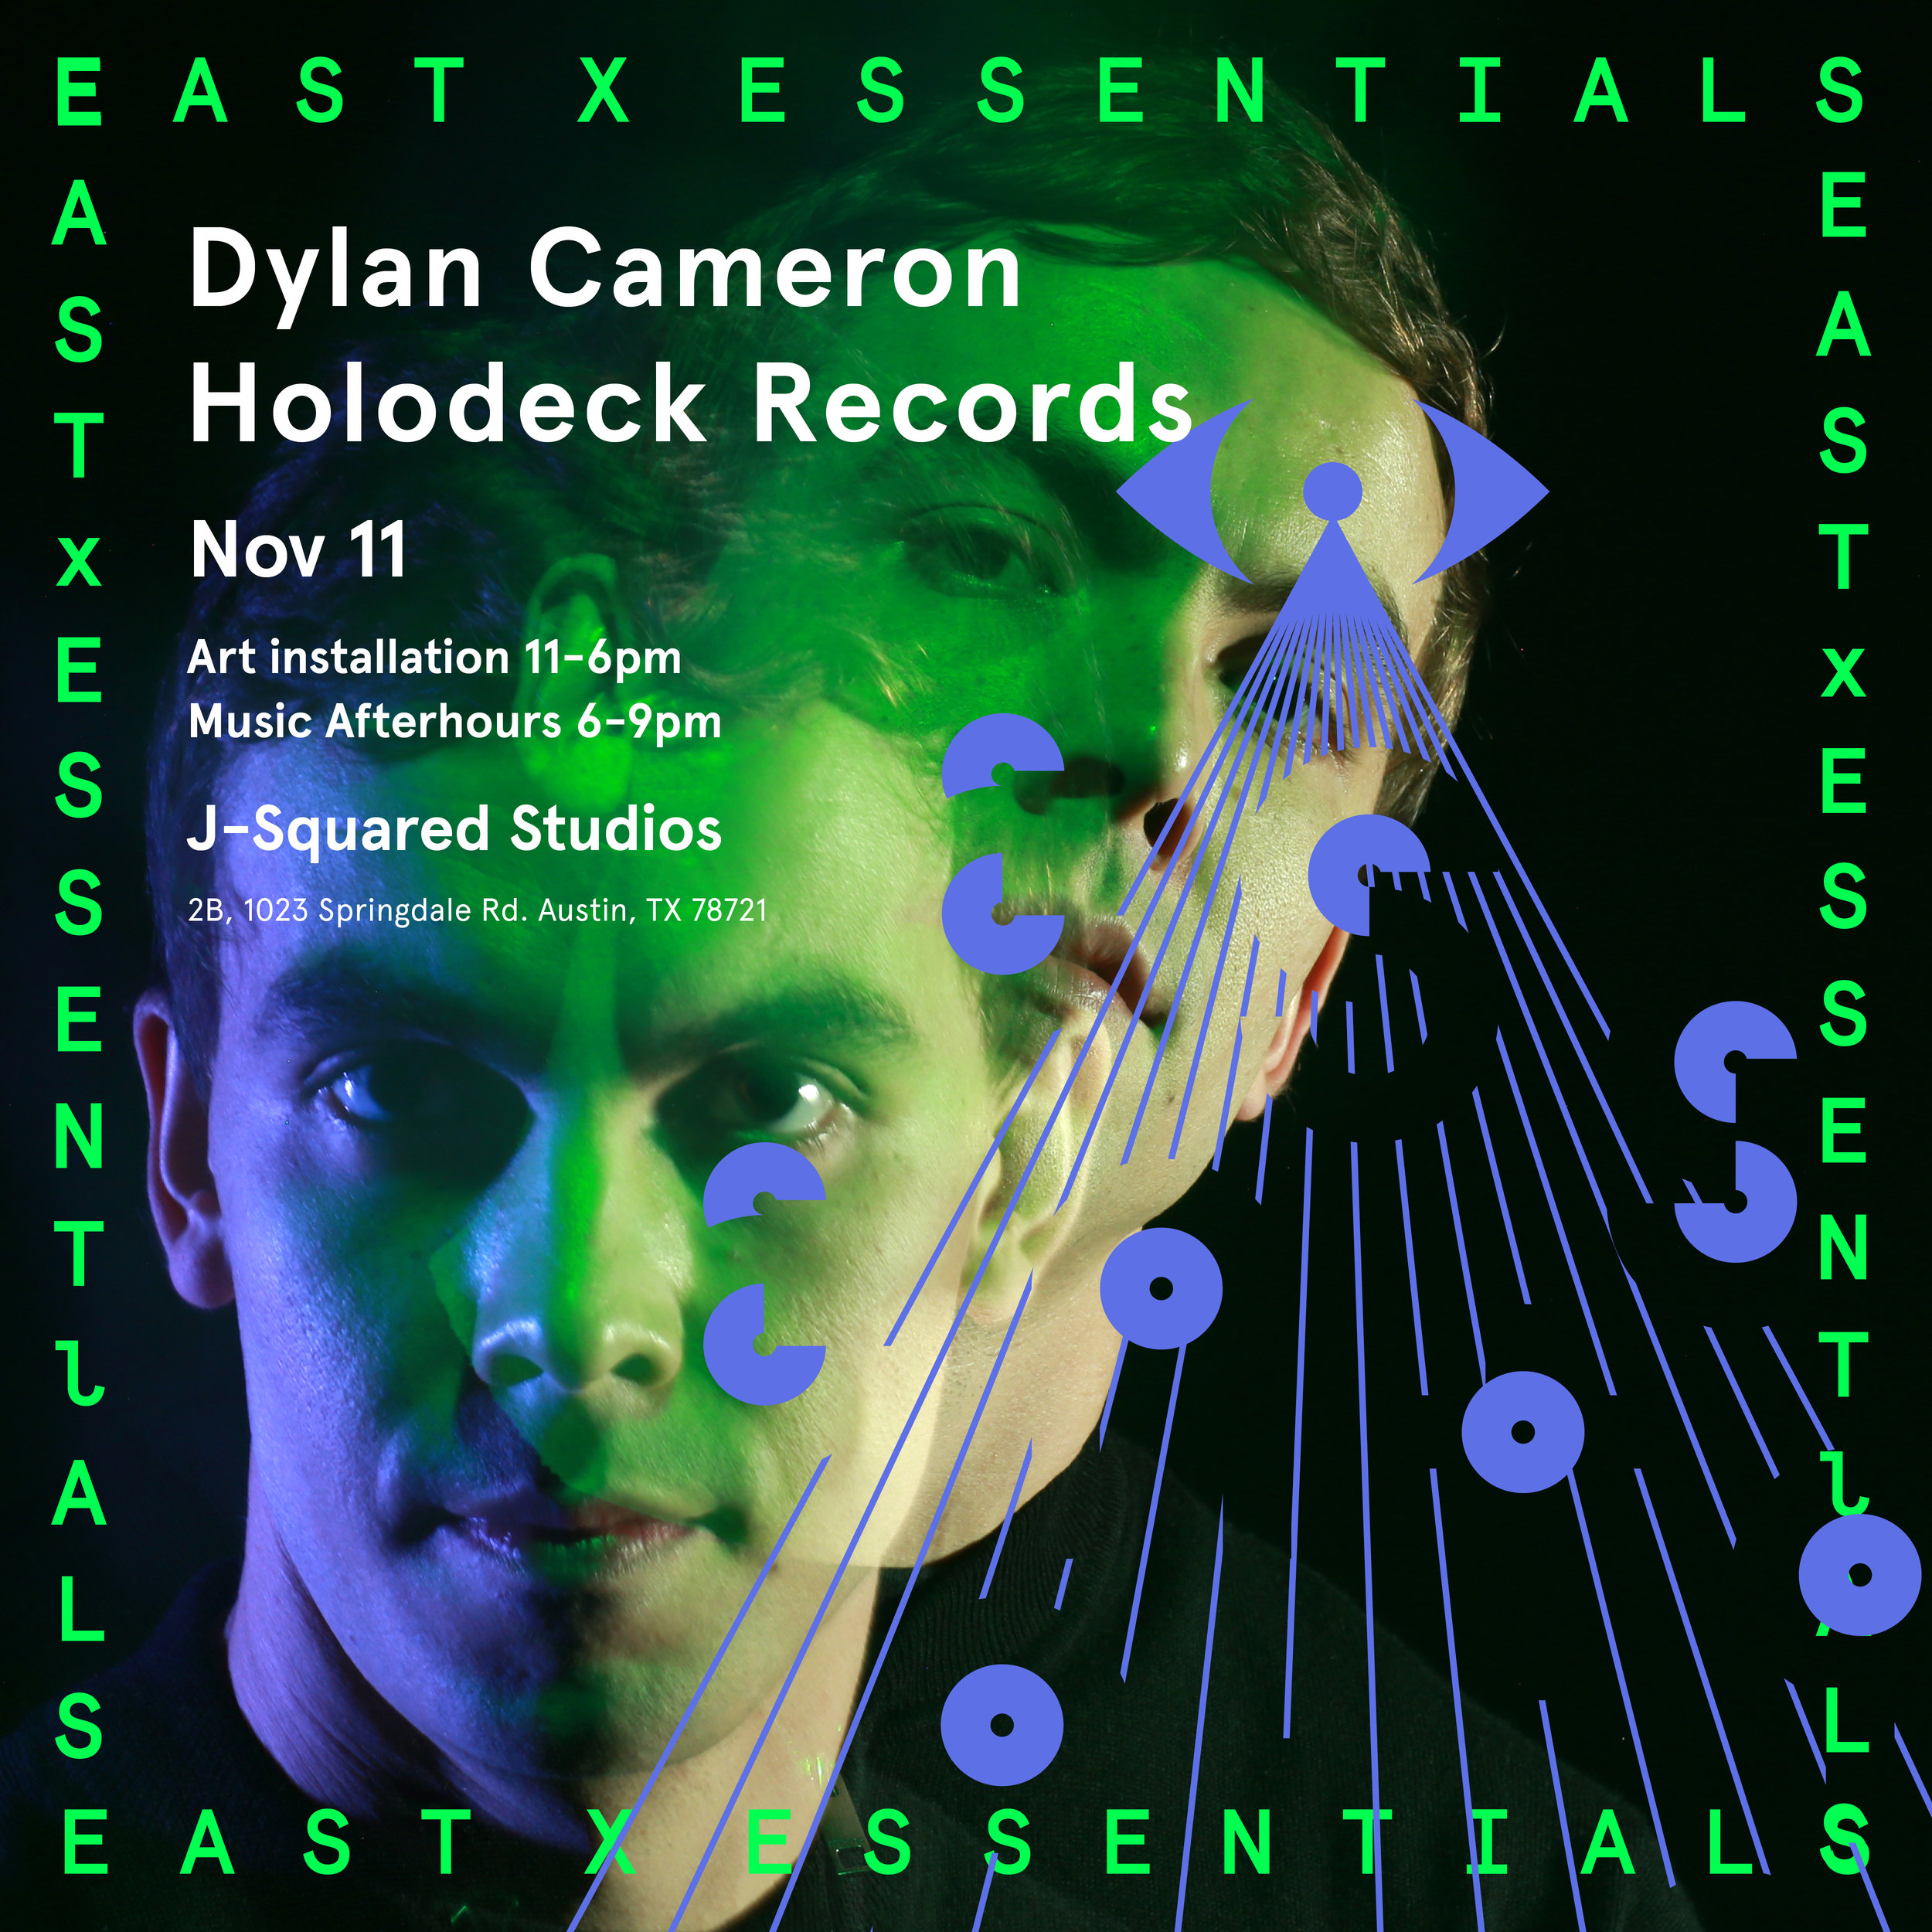 Dylan Cameron, Alternate flyer for EAST X ESSENTIALS CREATIVE